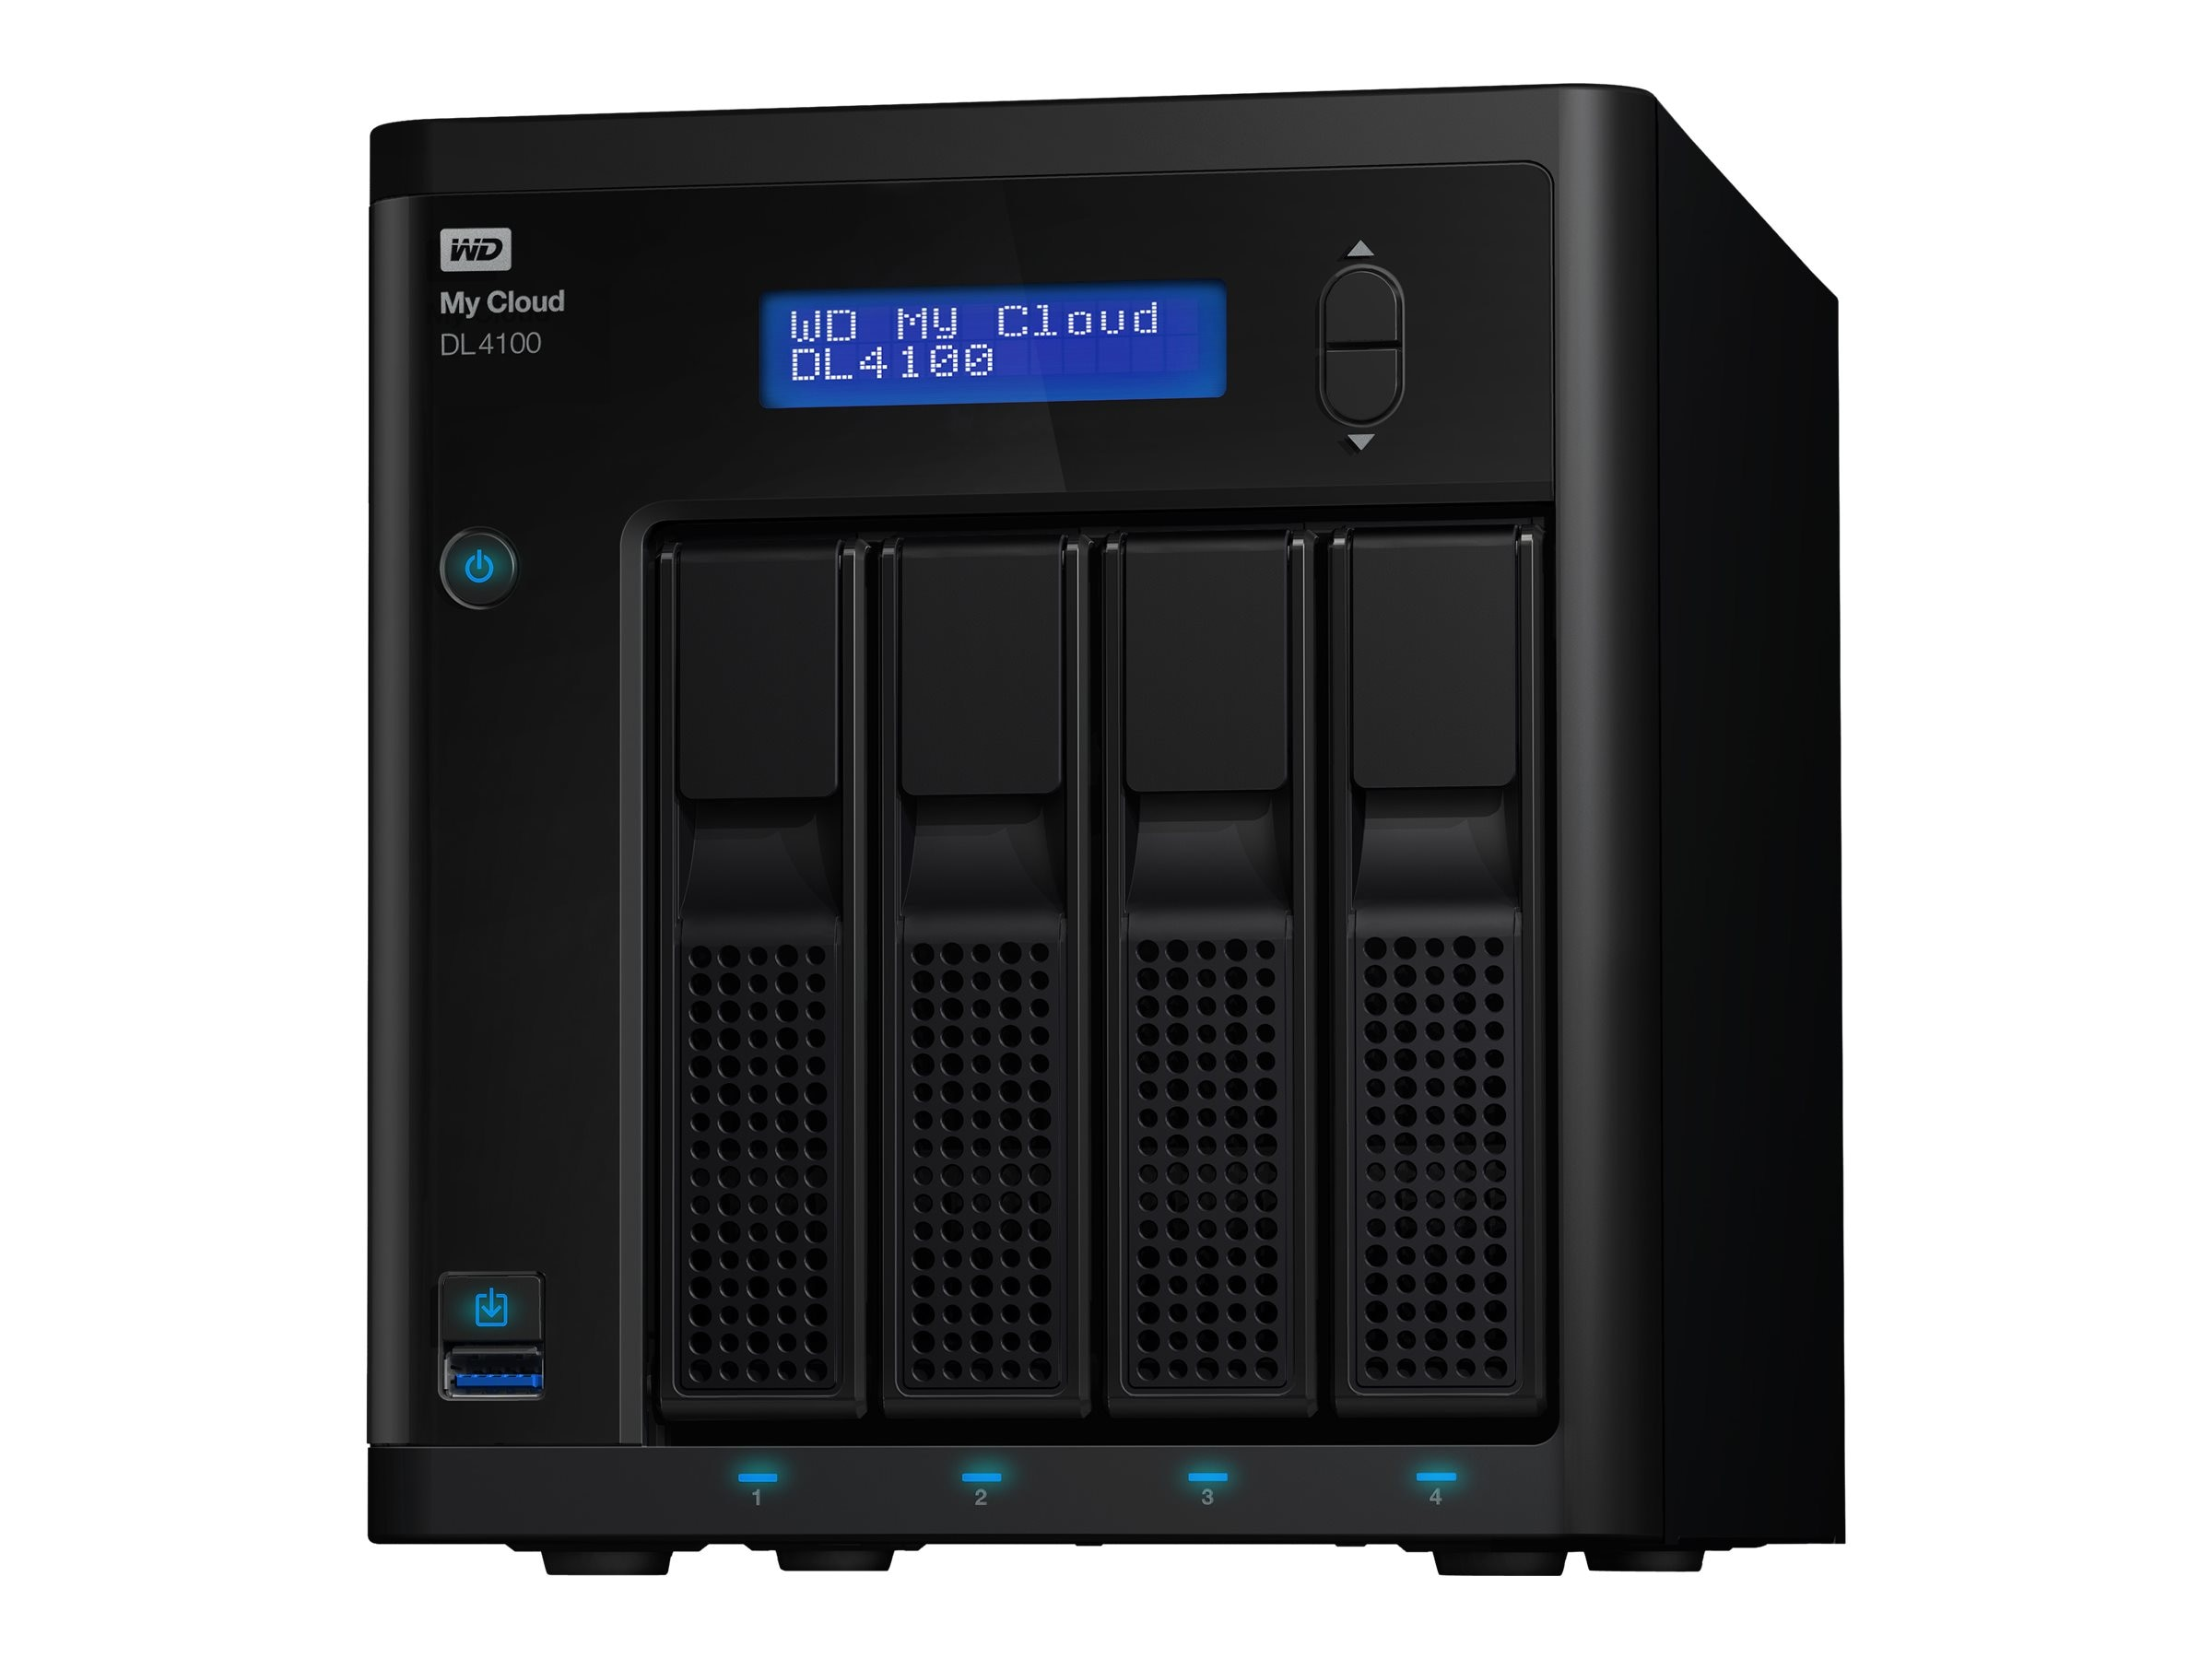 WD 16TB My Cloud DL4100 Network Attached Storage, WDBNEZ0160KBK-NESN, 18442771, Network Attached Storage